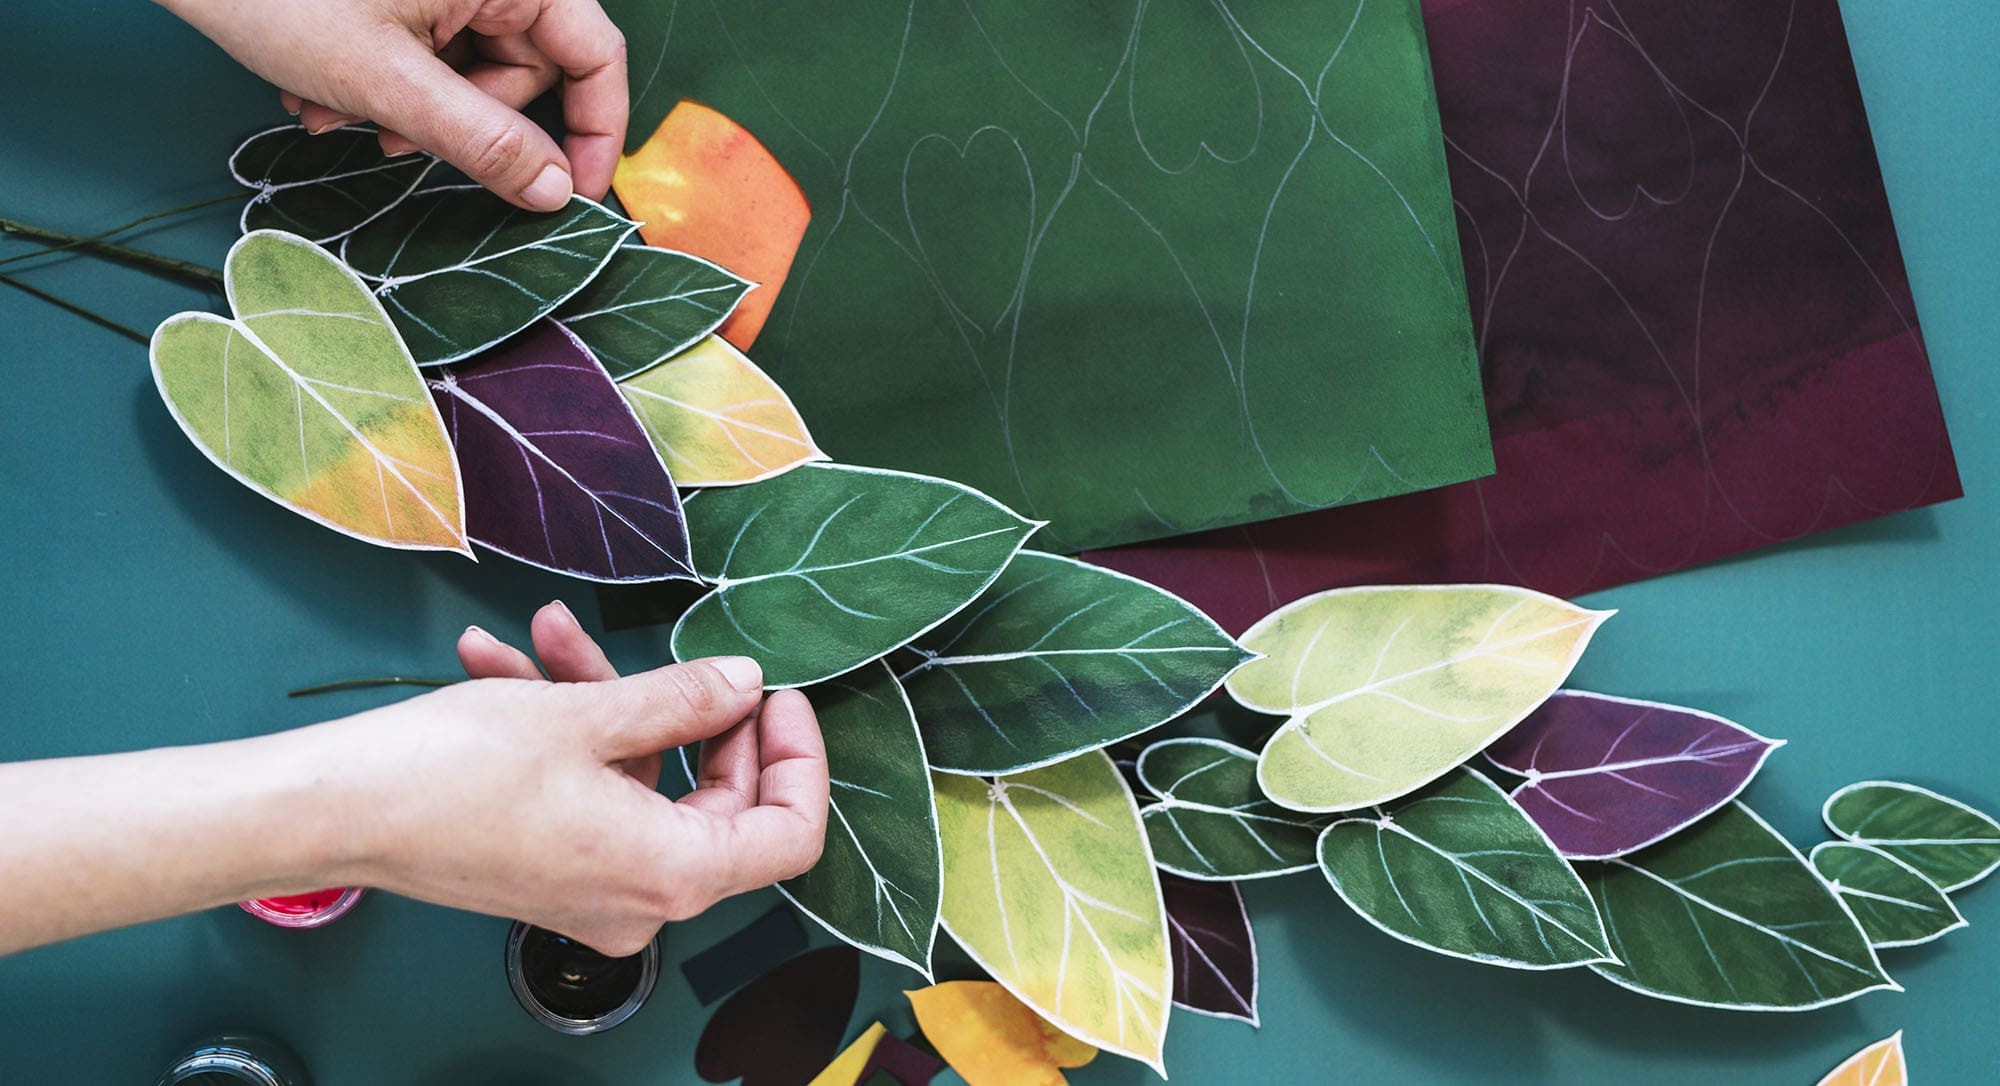 Handcrafted Paper Foliage | Philodendron | Corrie Beth Hogg